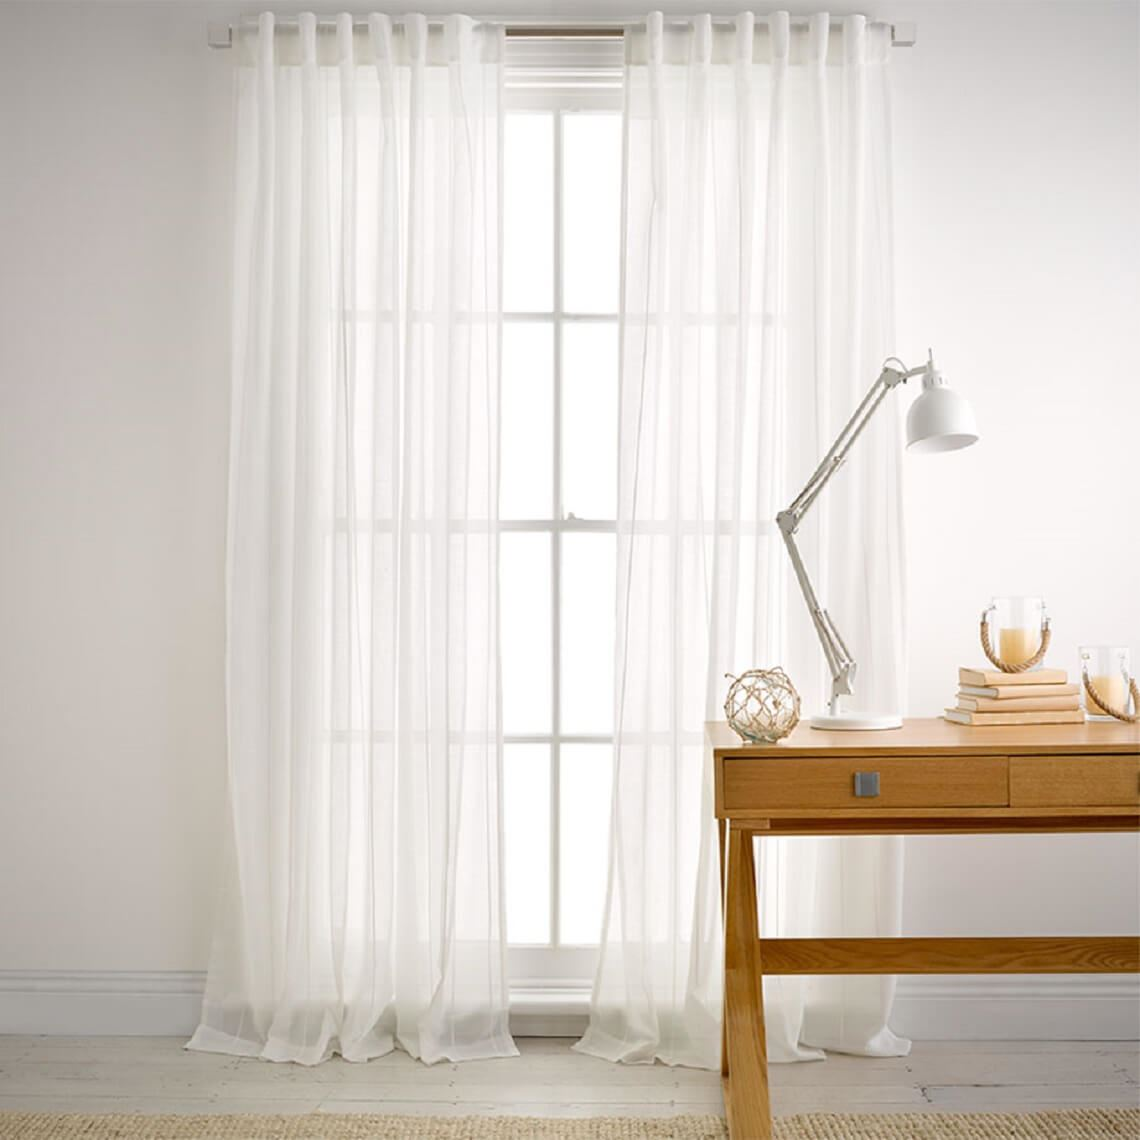 Plaited Sheer Concealed Tab Curtain Size W 140cm x D 1cm x H 230cm in White 100% Polyester Freedom by Freedom, a Curtains for sale on Style Sourcebook